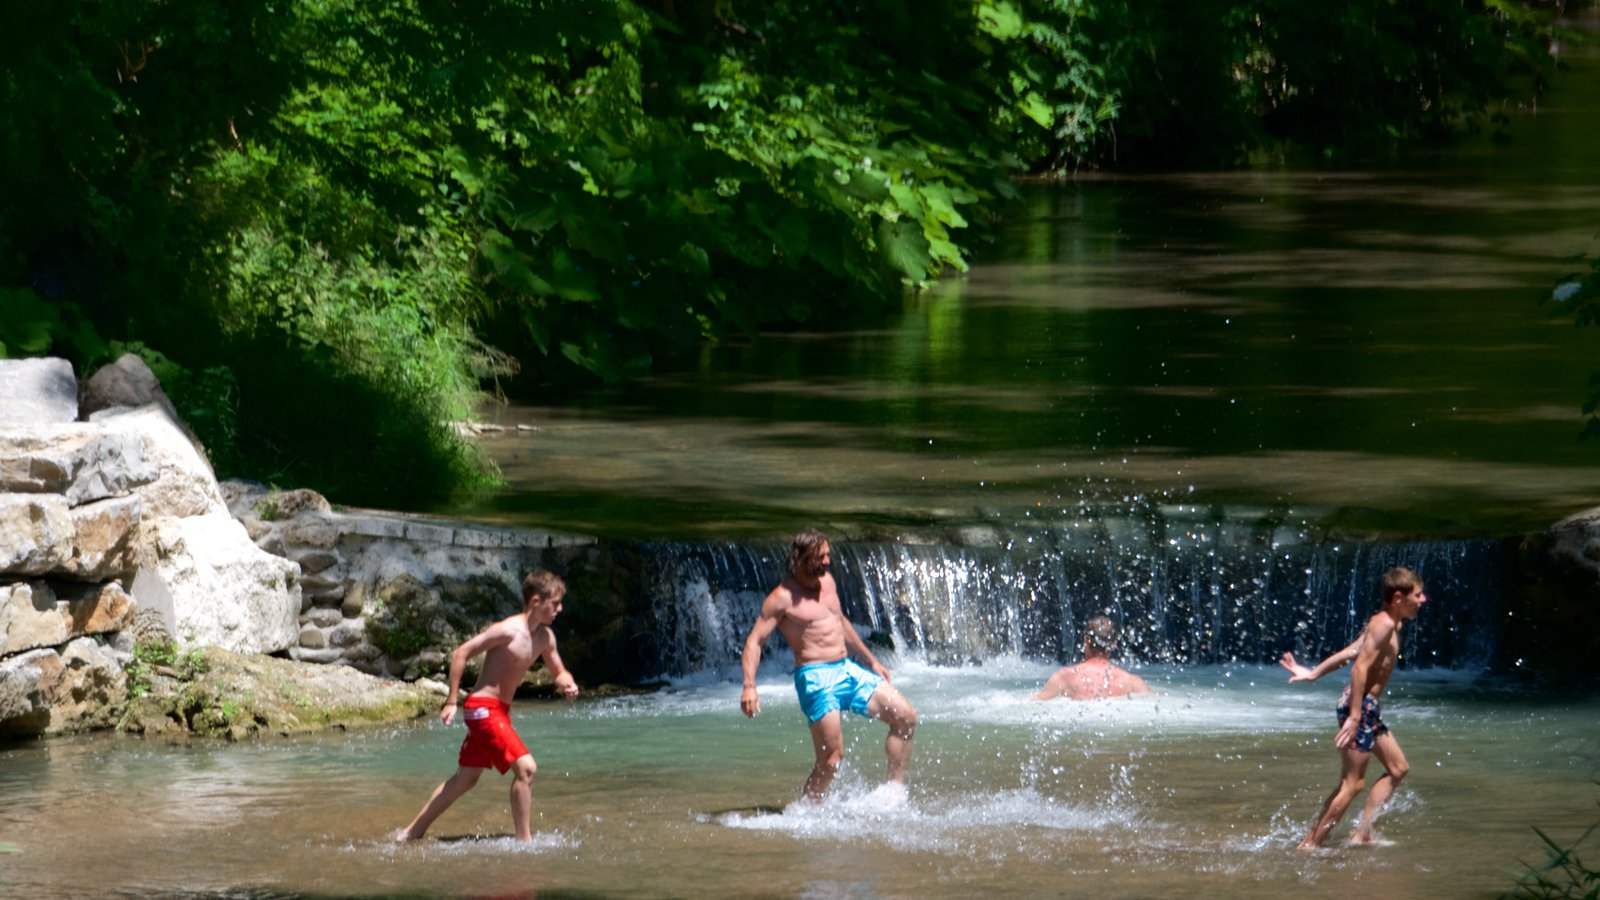 Pitigliano which includes swimming and a river or creek as well as children